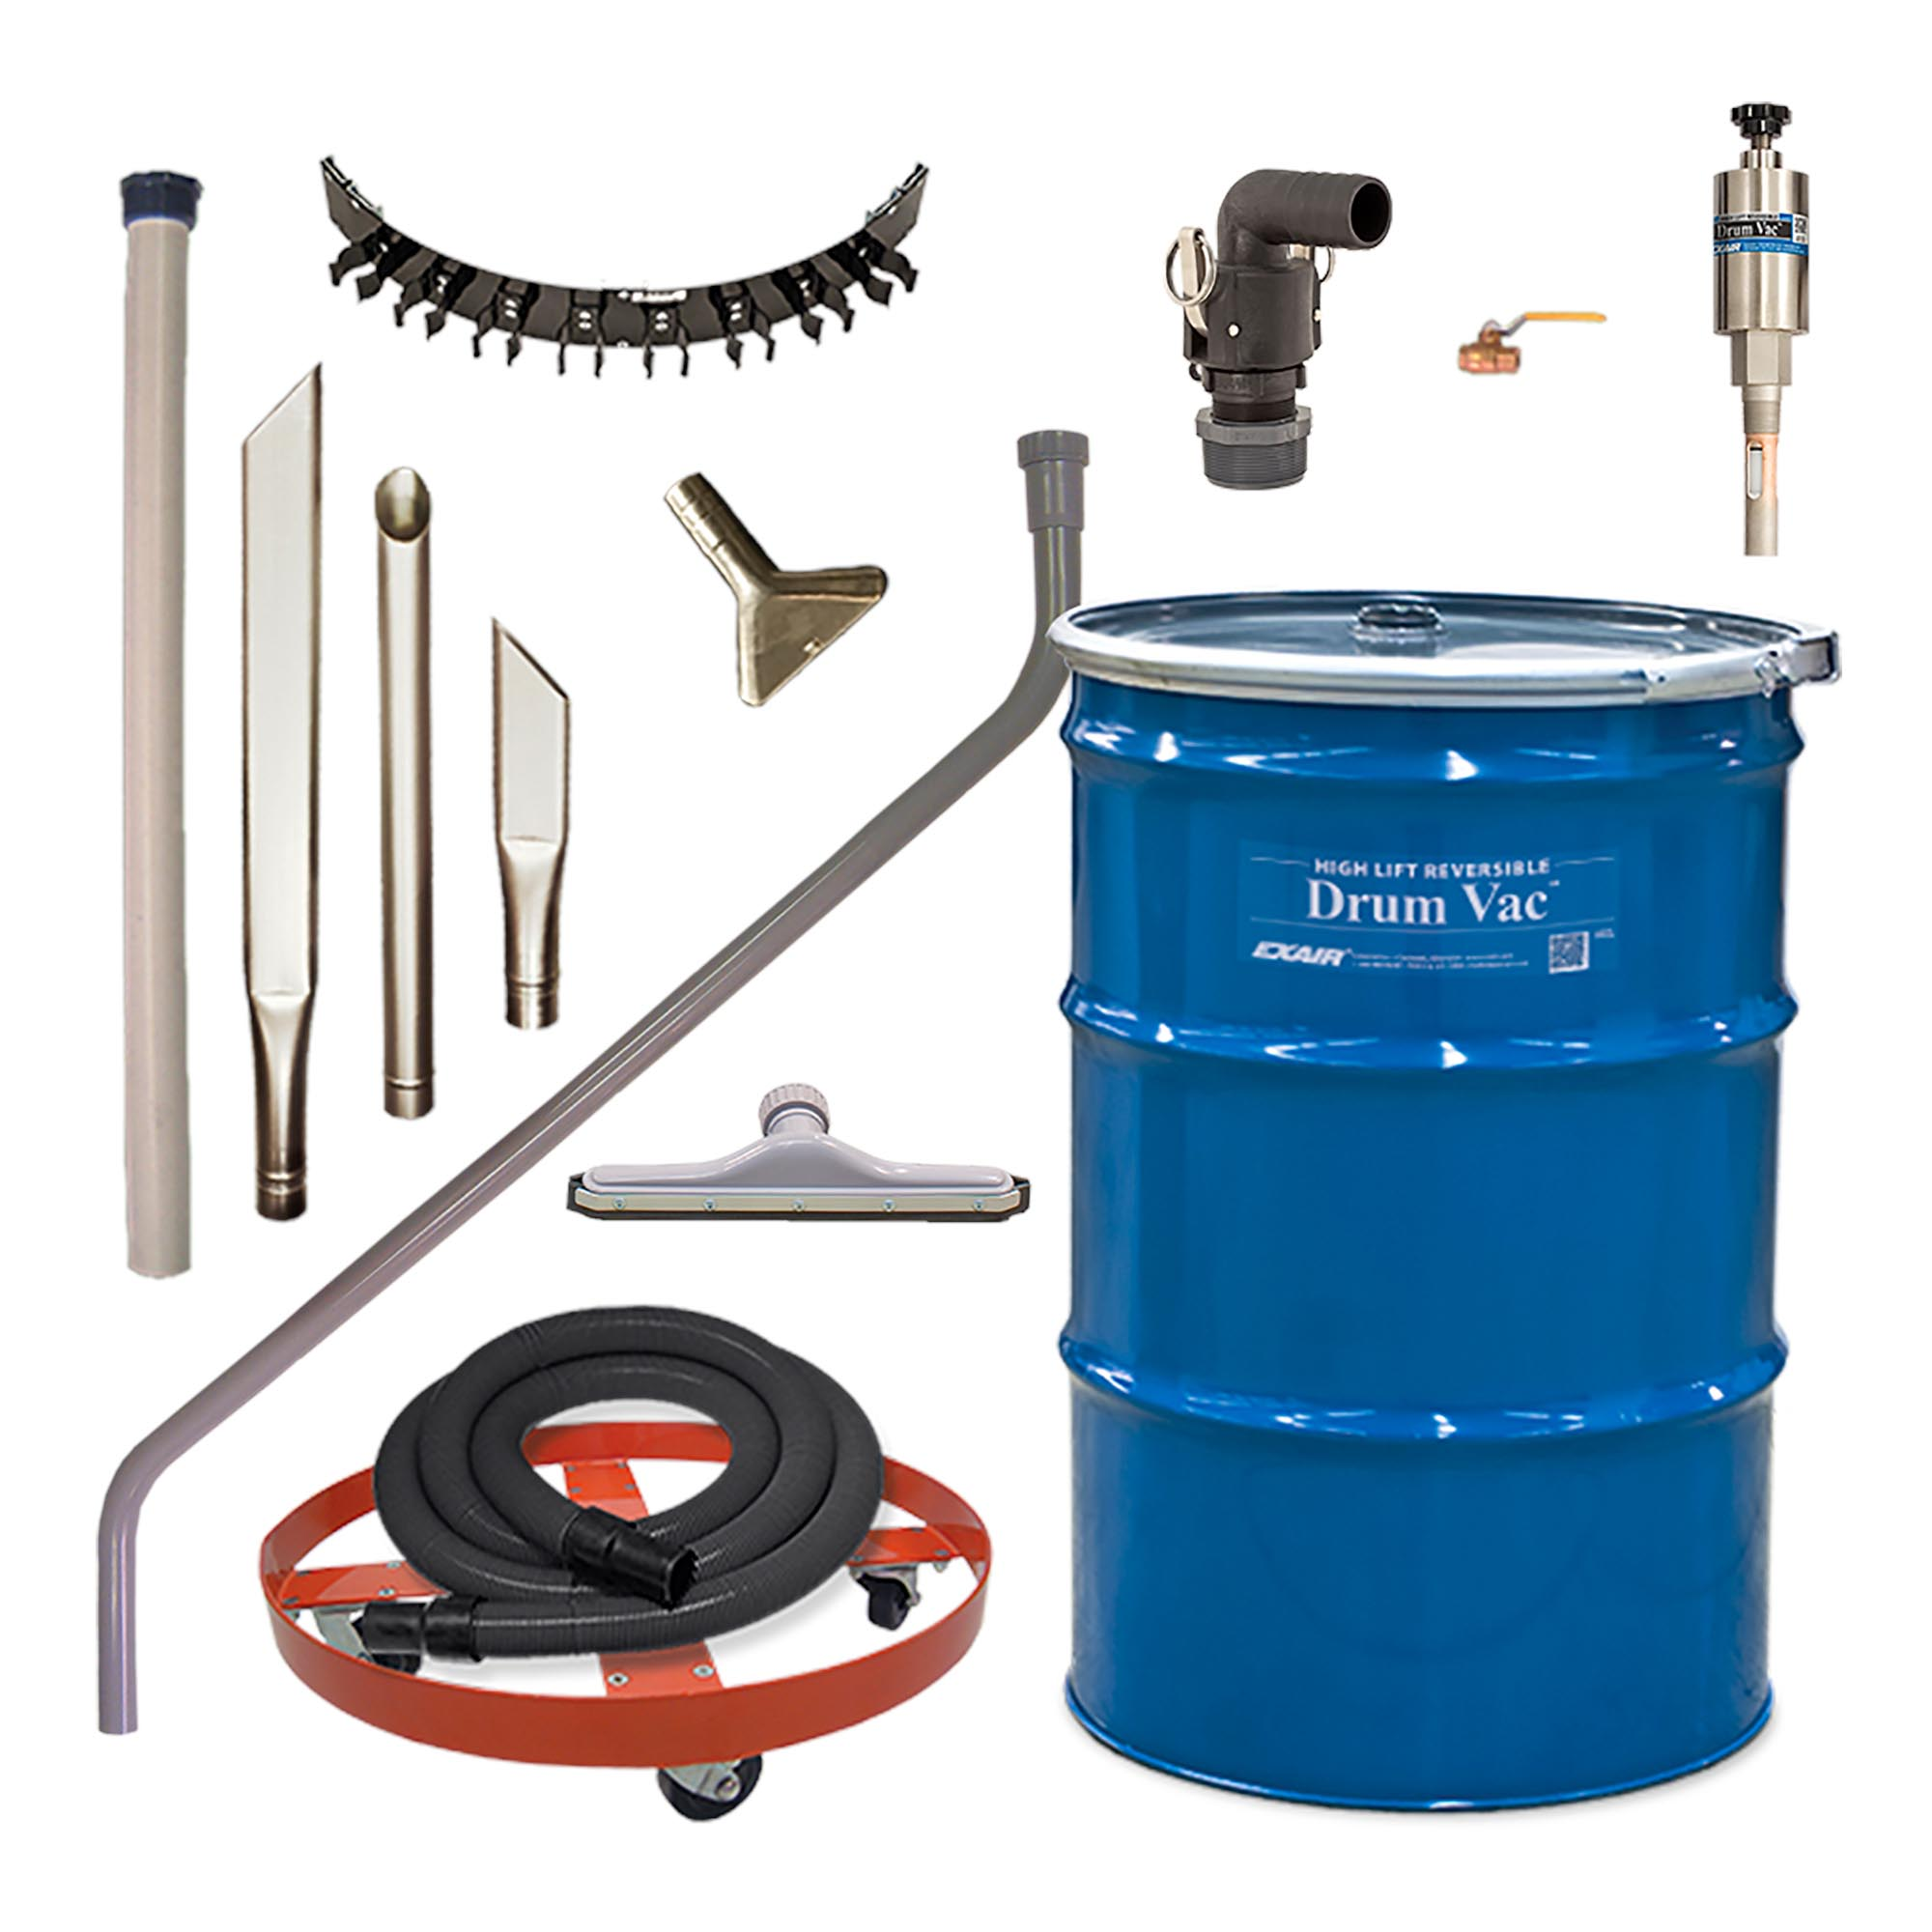 Model 6395 55 Gallon Premium High Lift Reversible Drum Vac System